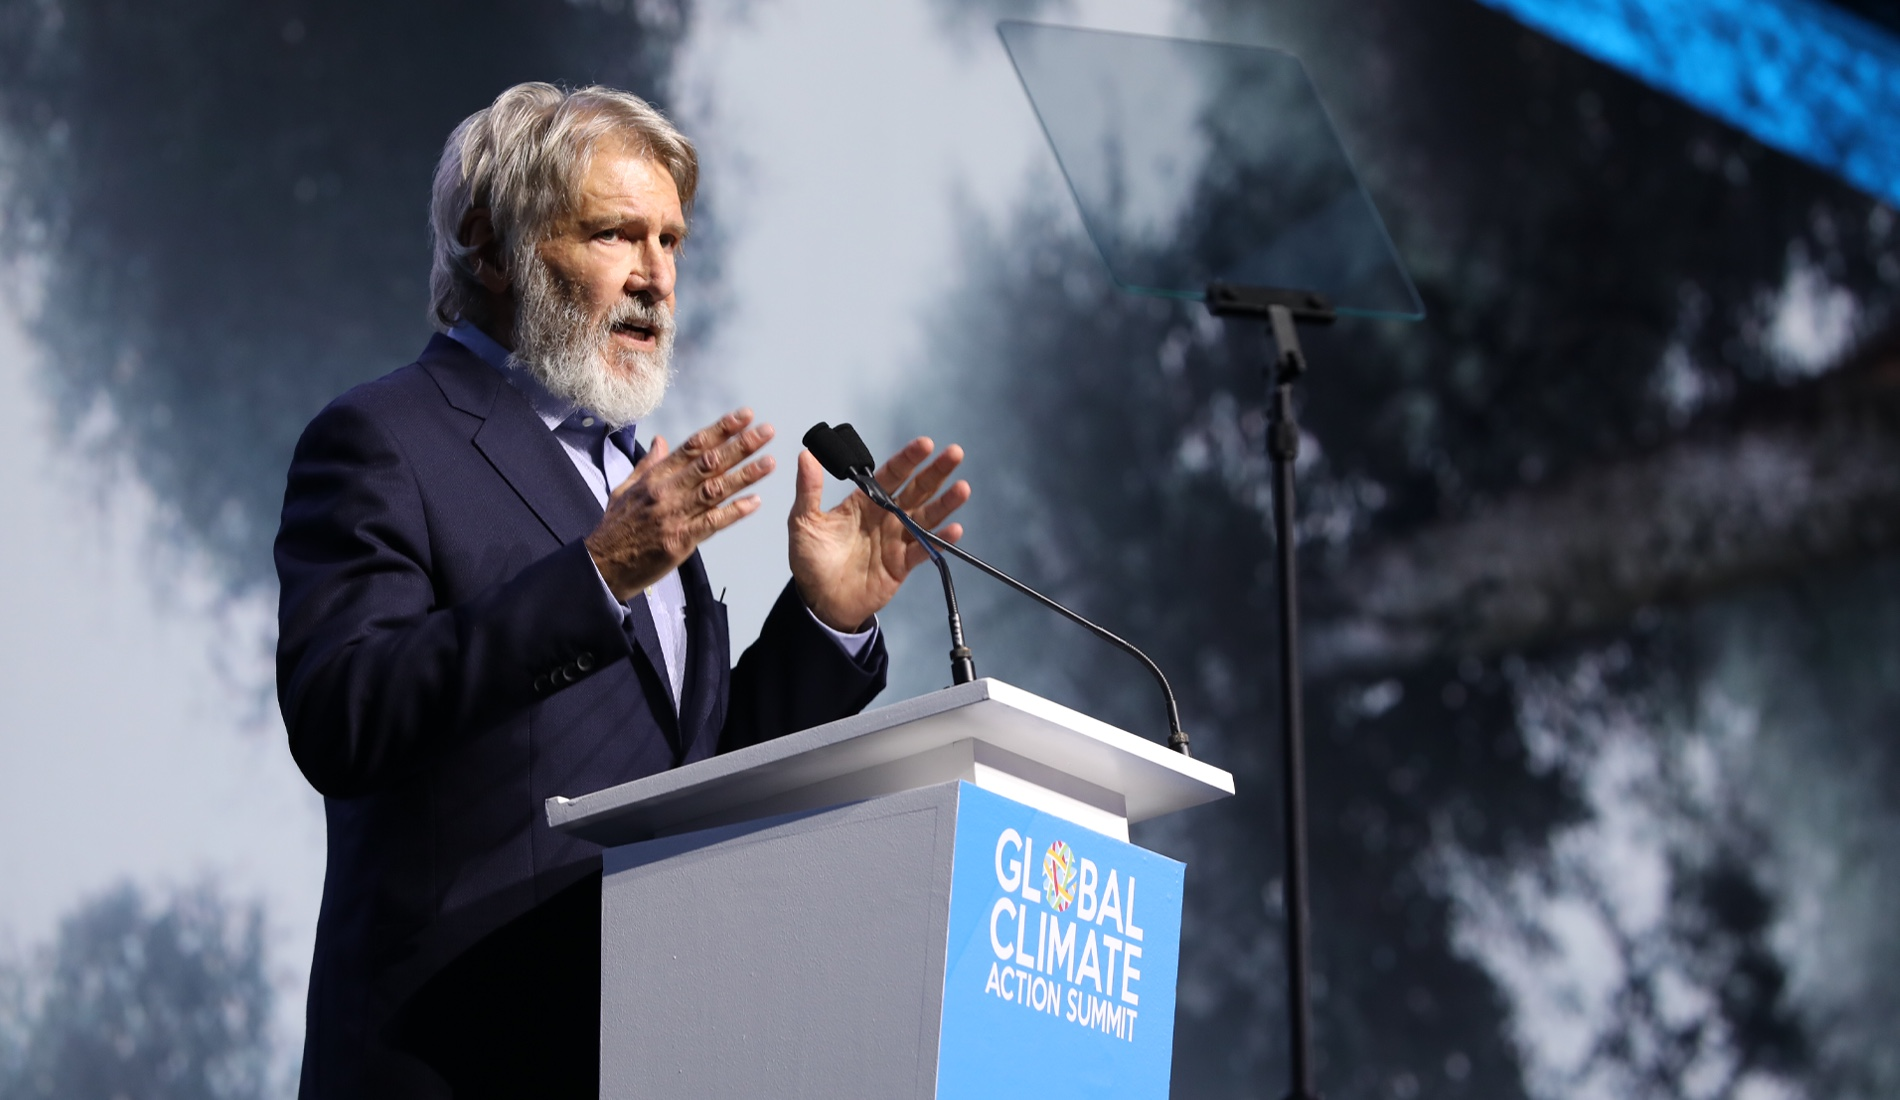 Global Climate Action Summit | San Francisco